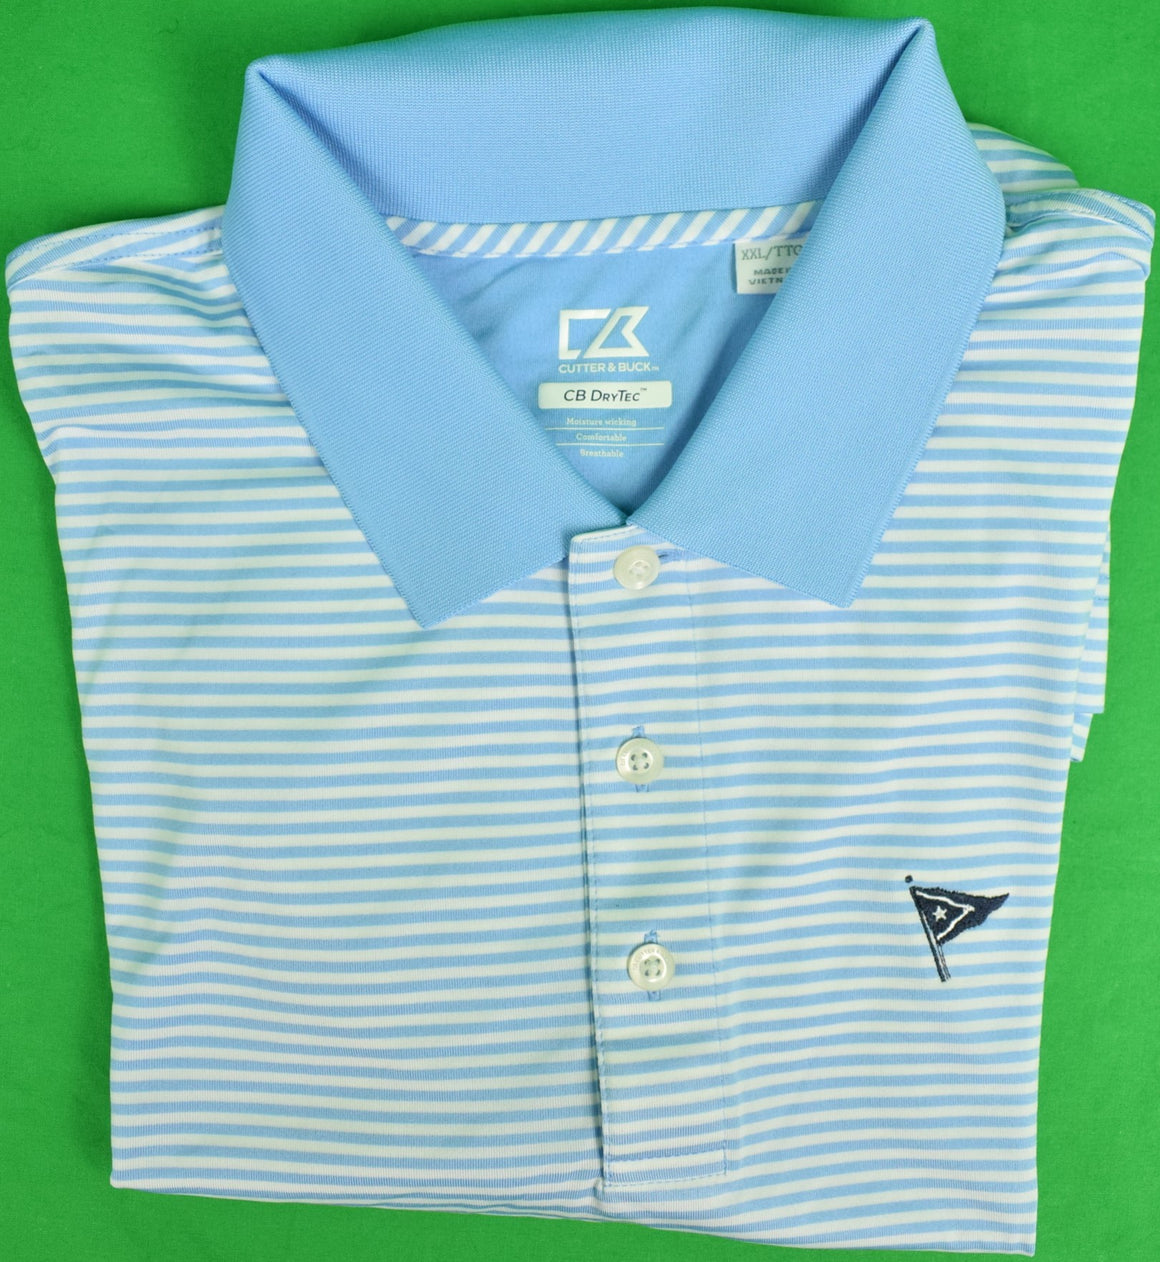 Cutter & Buck Blue/White Stripe Polo S/S Shirt w/ Nantucket Yacht Club Logo Sz: XXL